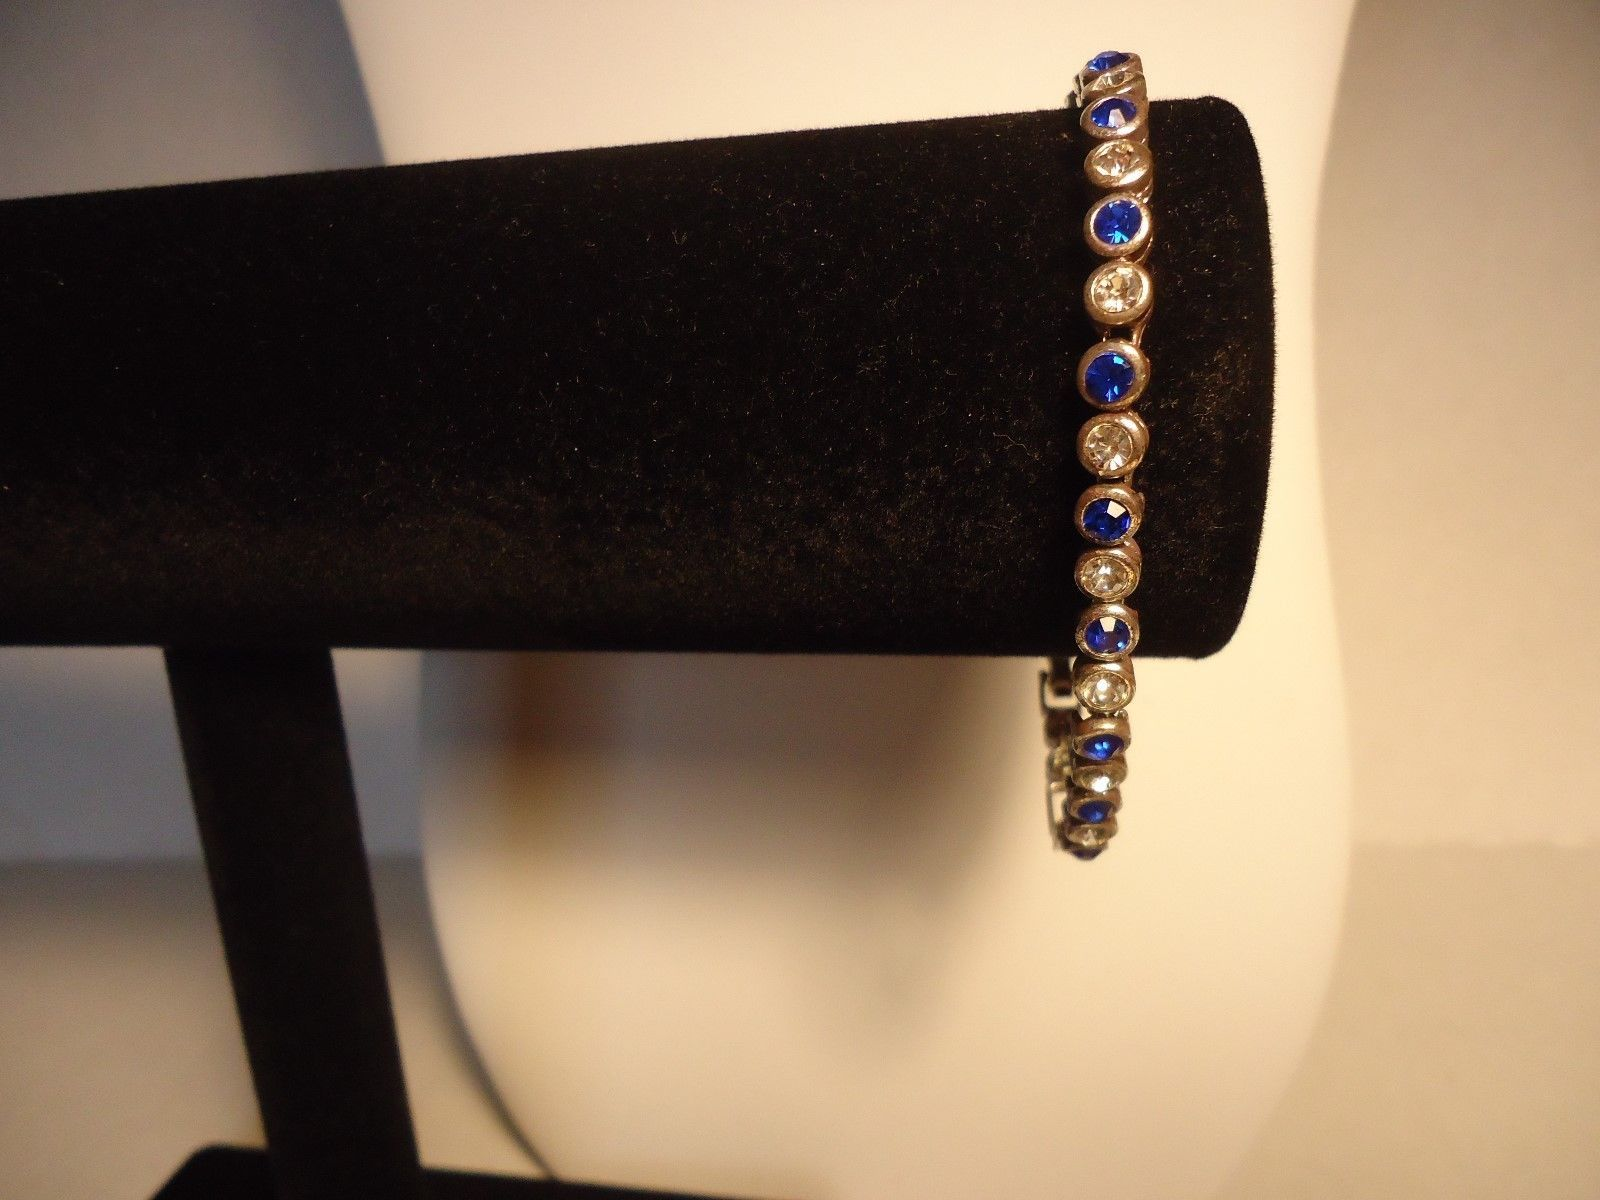 Avon Sparkling Crystal Tennis Bracelet and Earrings Set (Sapphire Color) 2002